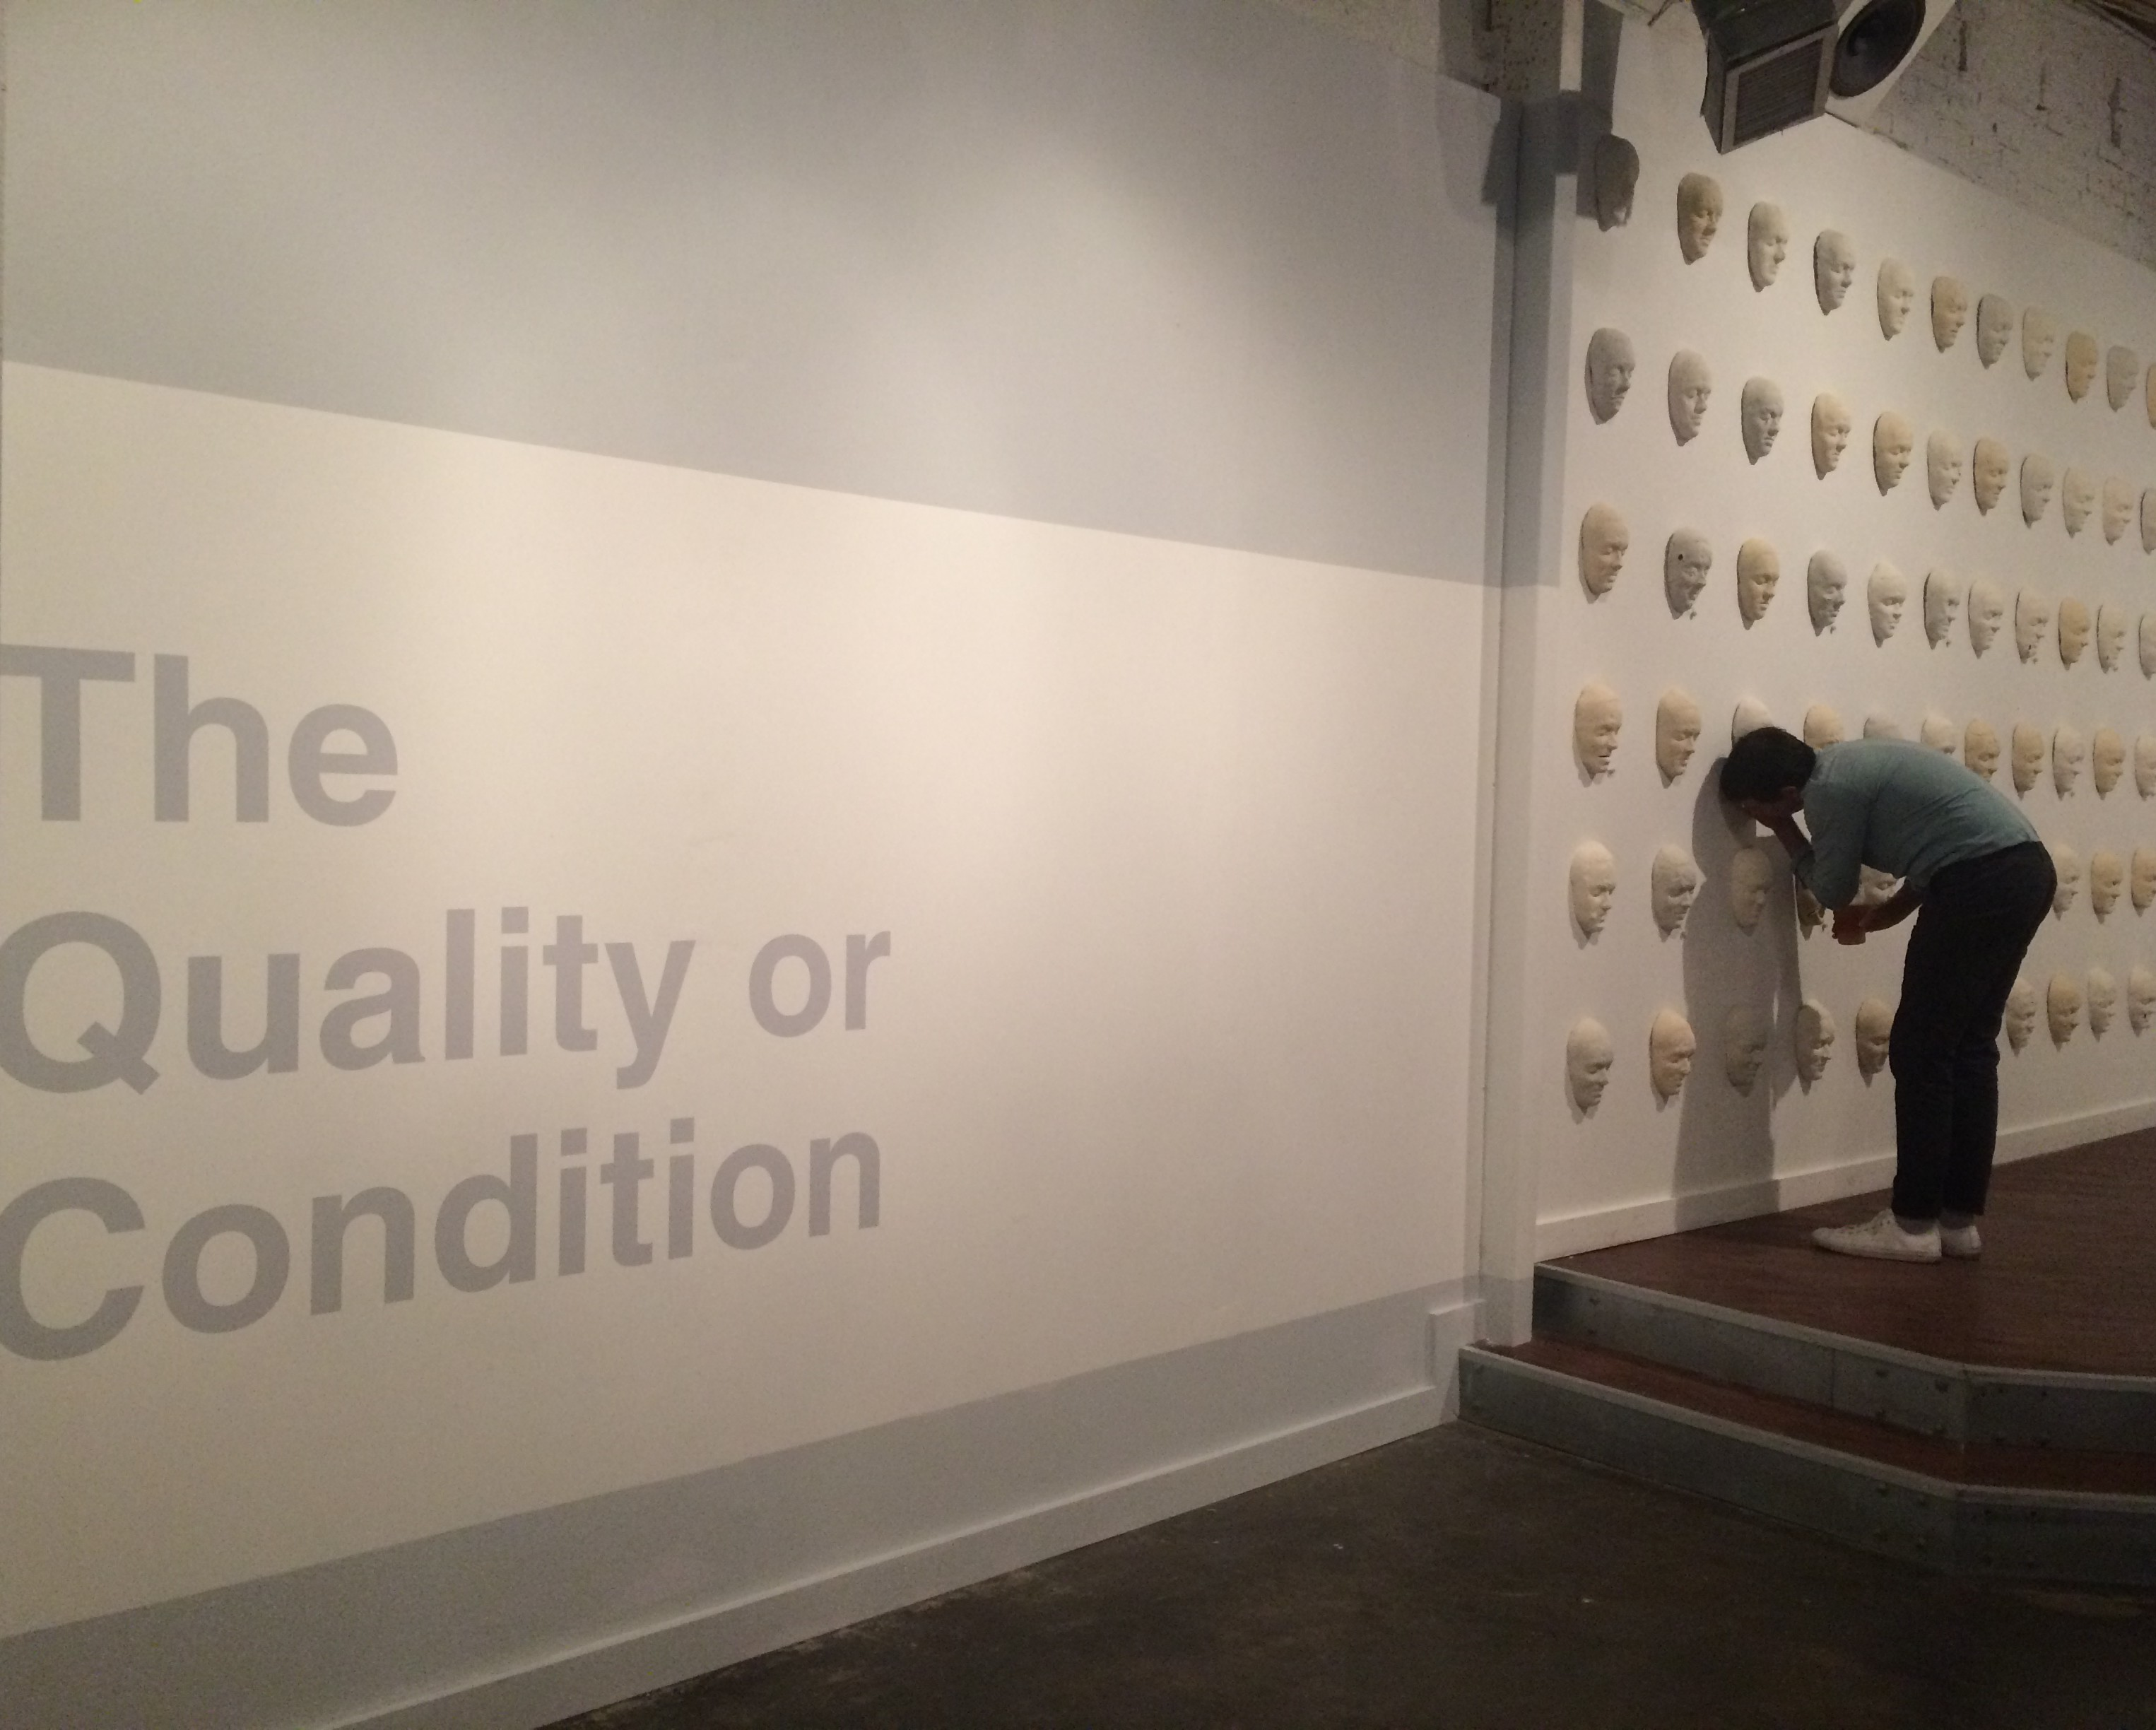 <em>The Quality or Condition, 2015</em><br/>@ Studium, Austin, TX